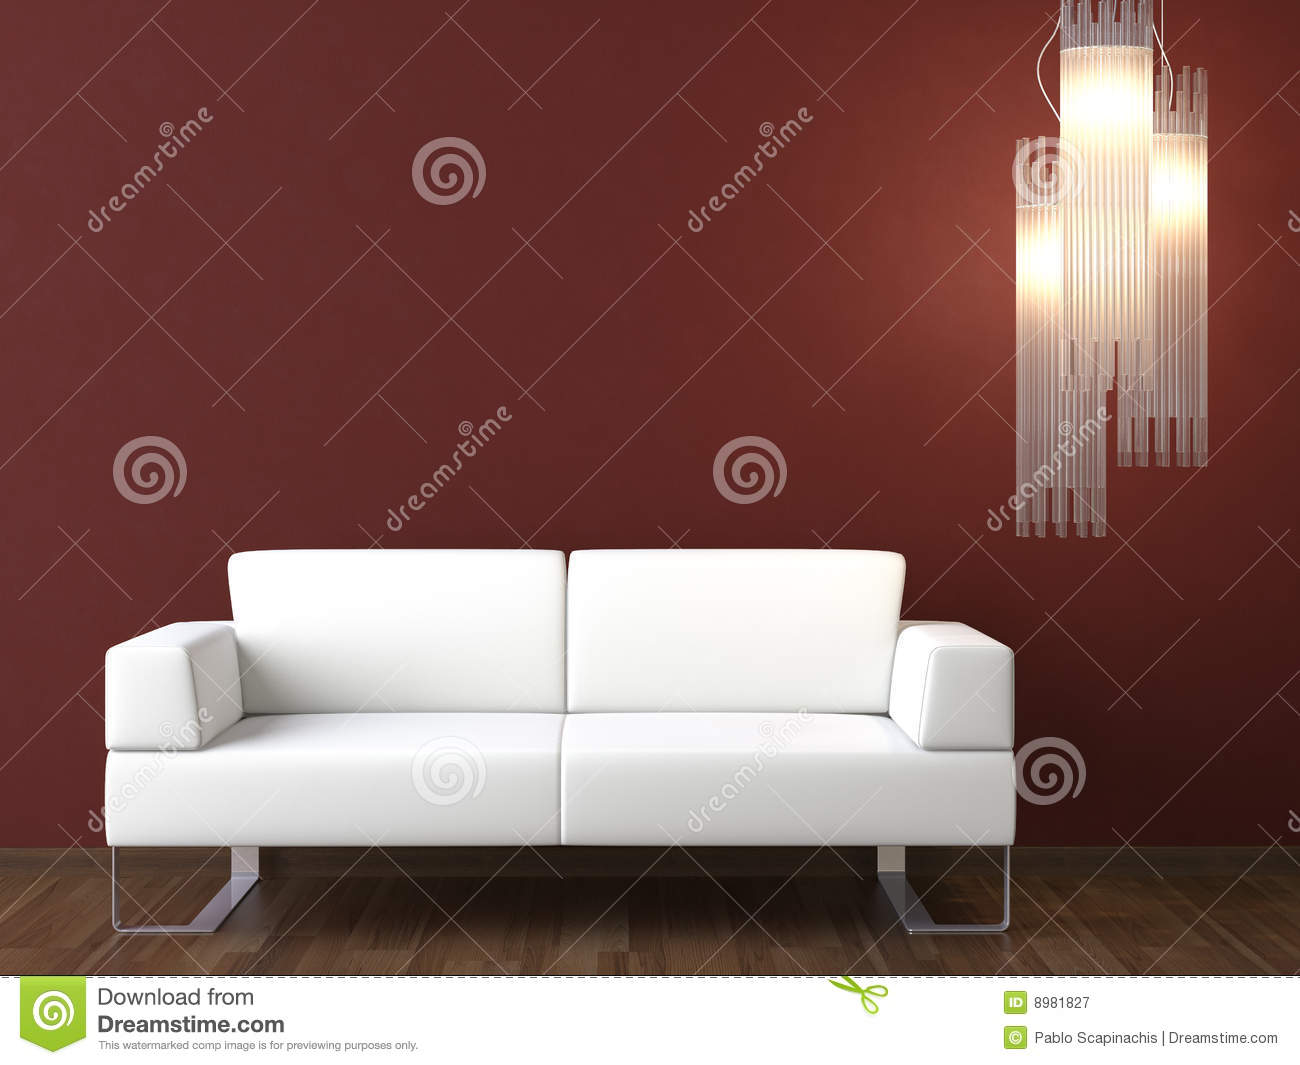 wei e couch der innenarchitektur auf bordeauxwand lizenzfreie stockfotografie bild 8981827. Black Bedroom Furniture Sets. Home Design Ideas